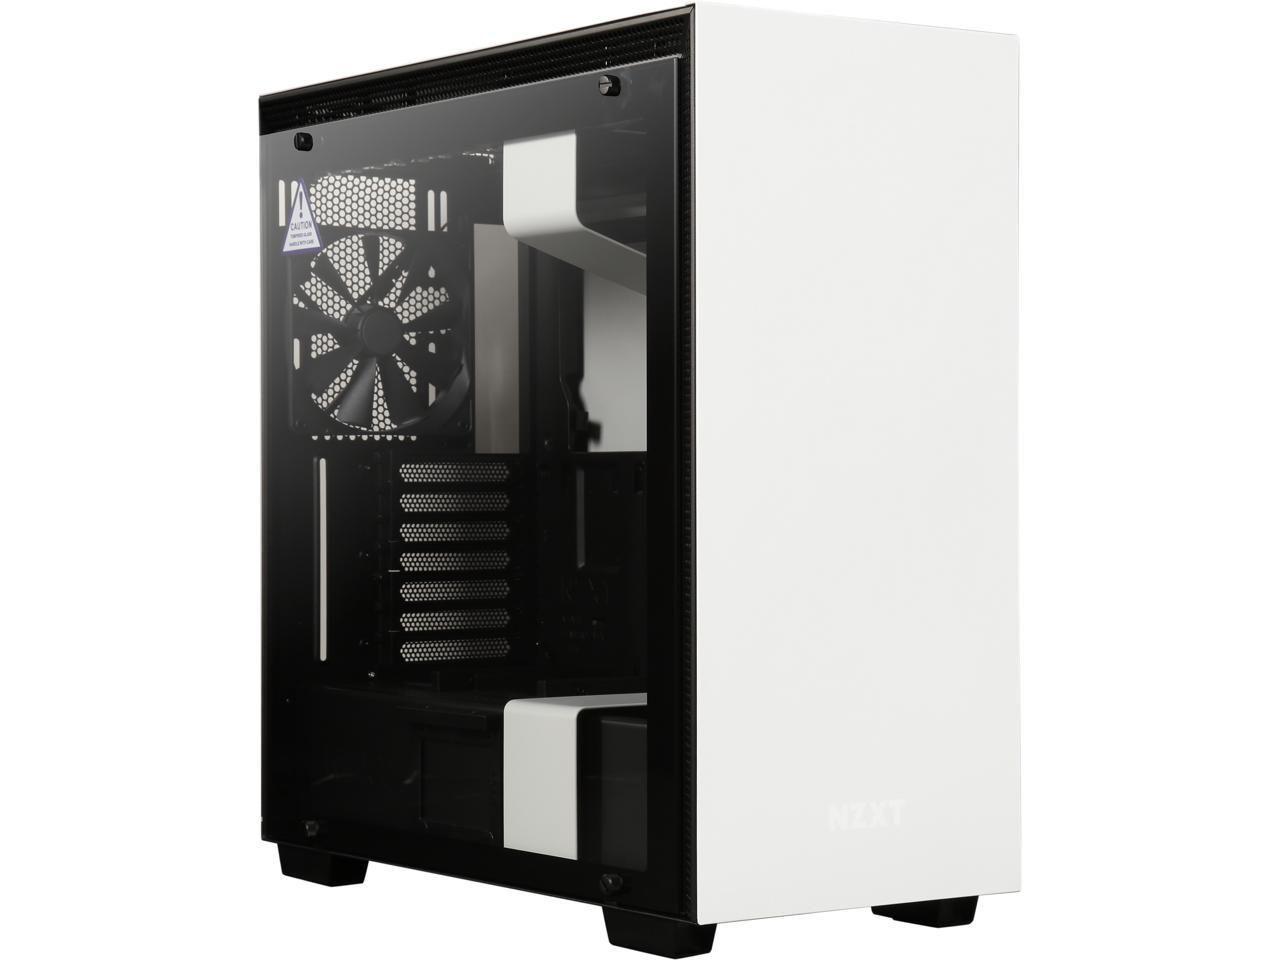 Nzxt H510 Compact Atx Mid Tower Pc Gaming Case Front I O Usb Type C Port Tempered Glass Side Panel Cable Management System Water Cooling Ready Steel Cable Management